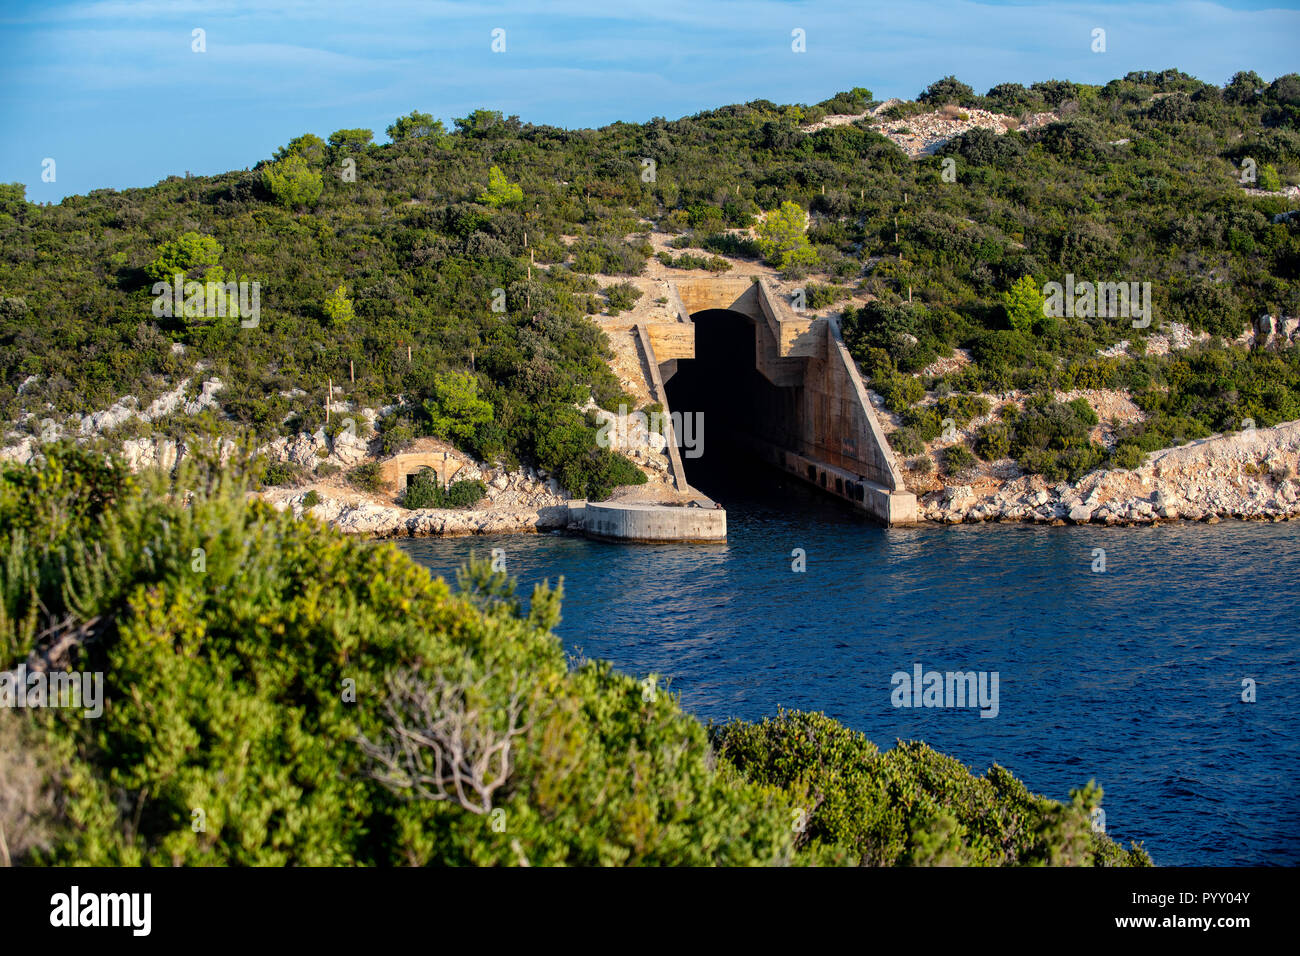 Abandoned submarine pen in Parja cove on the island of Vis, Croatia. Stock Photo